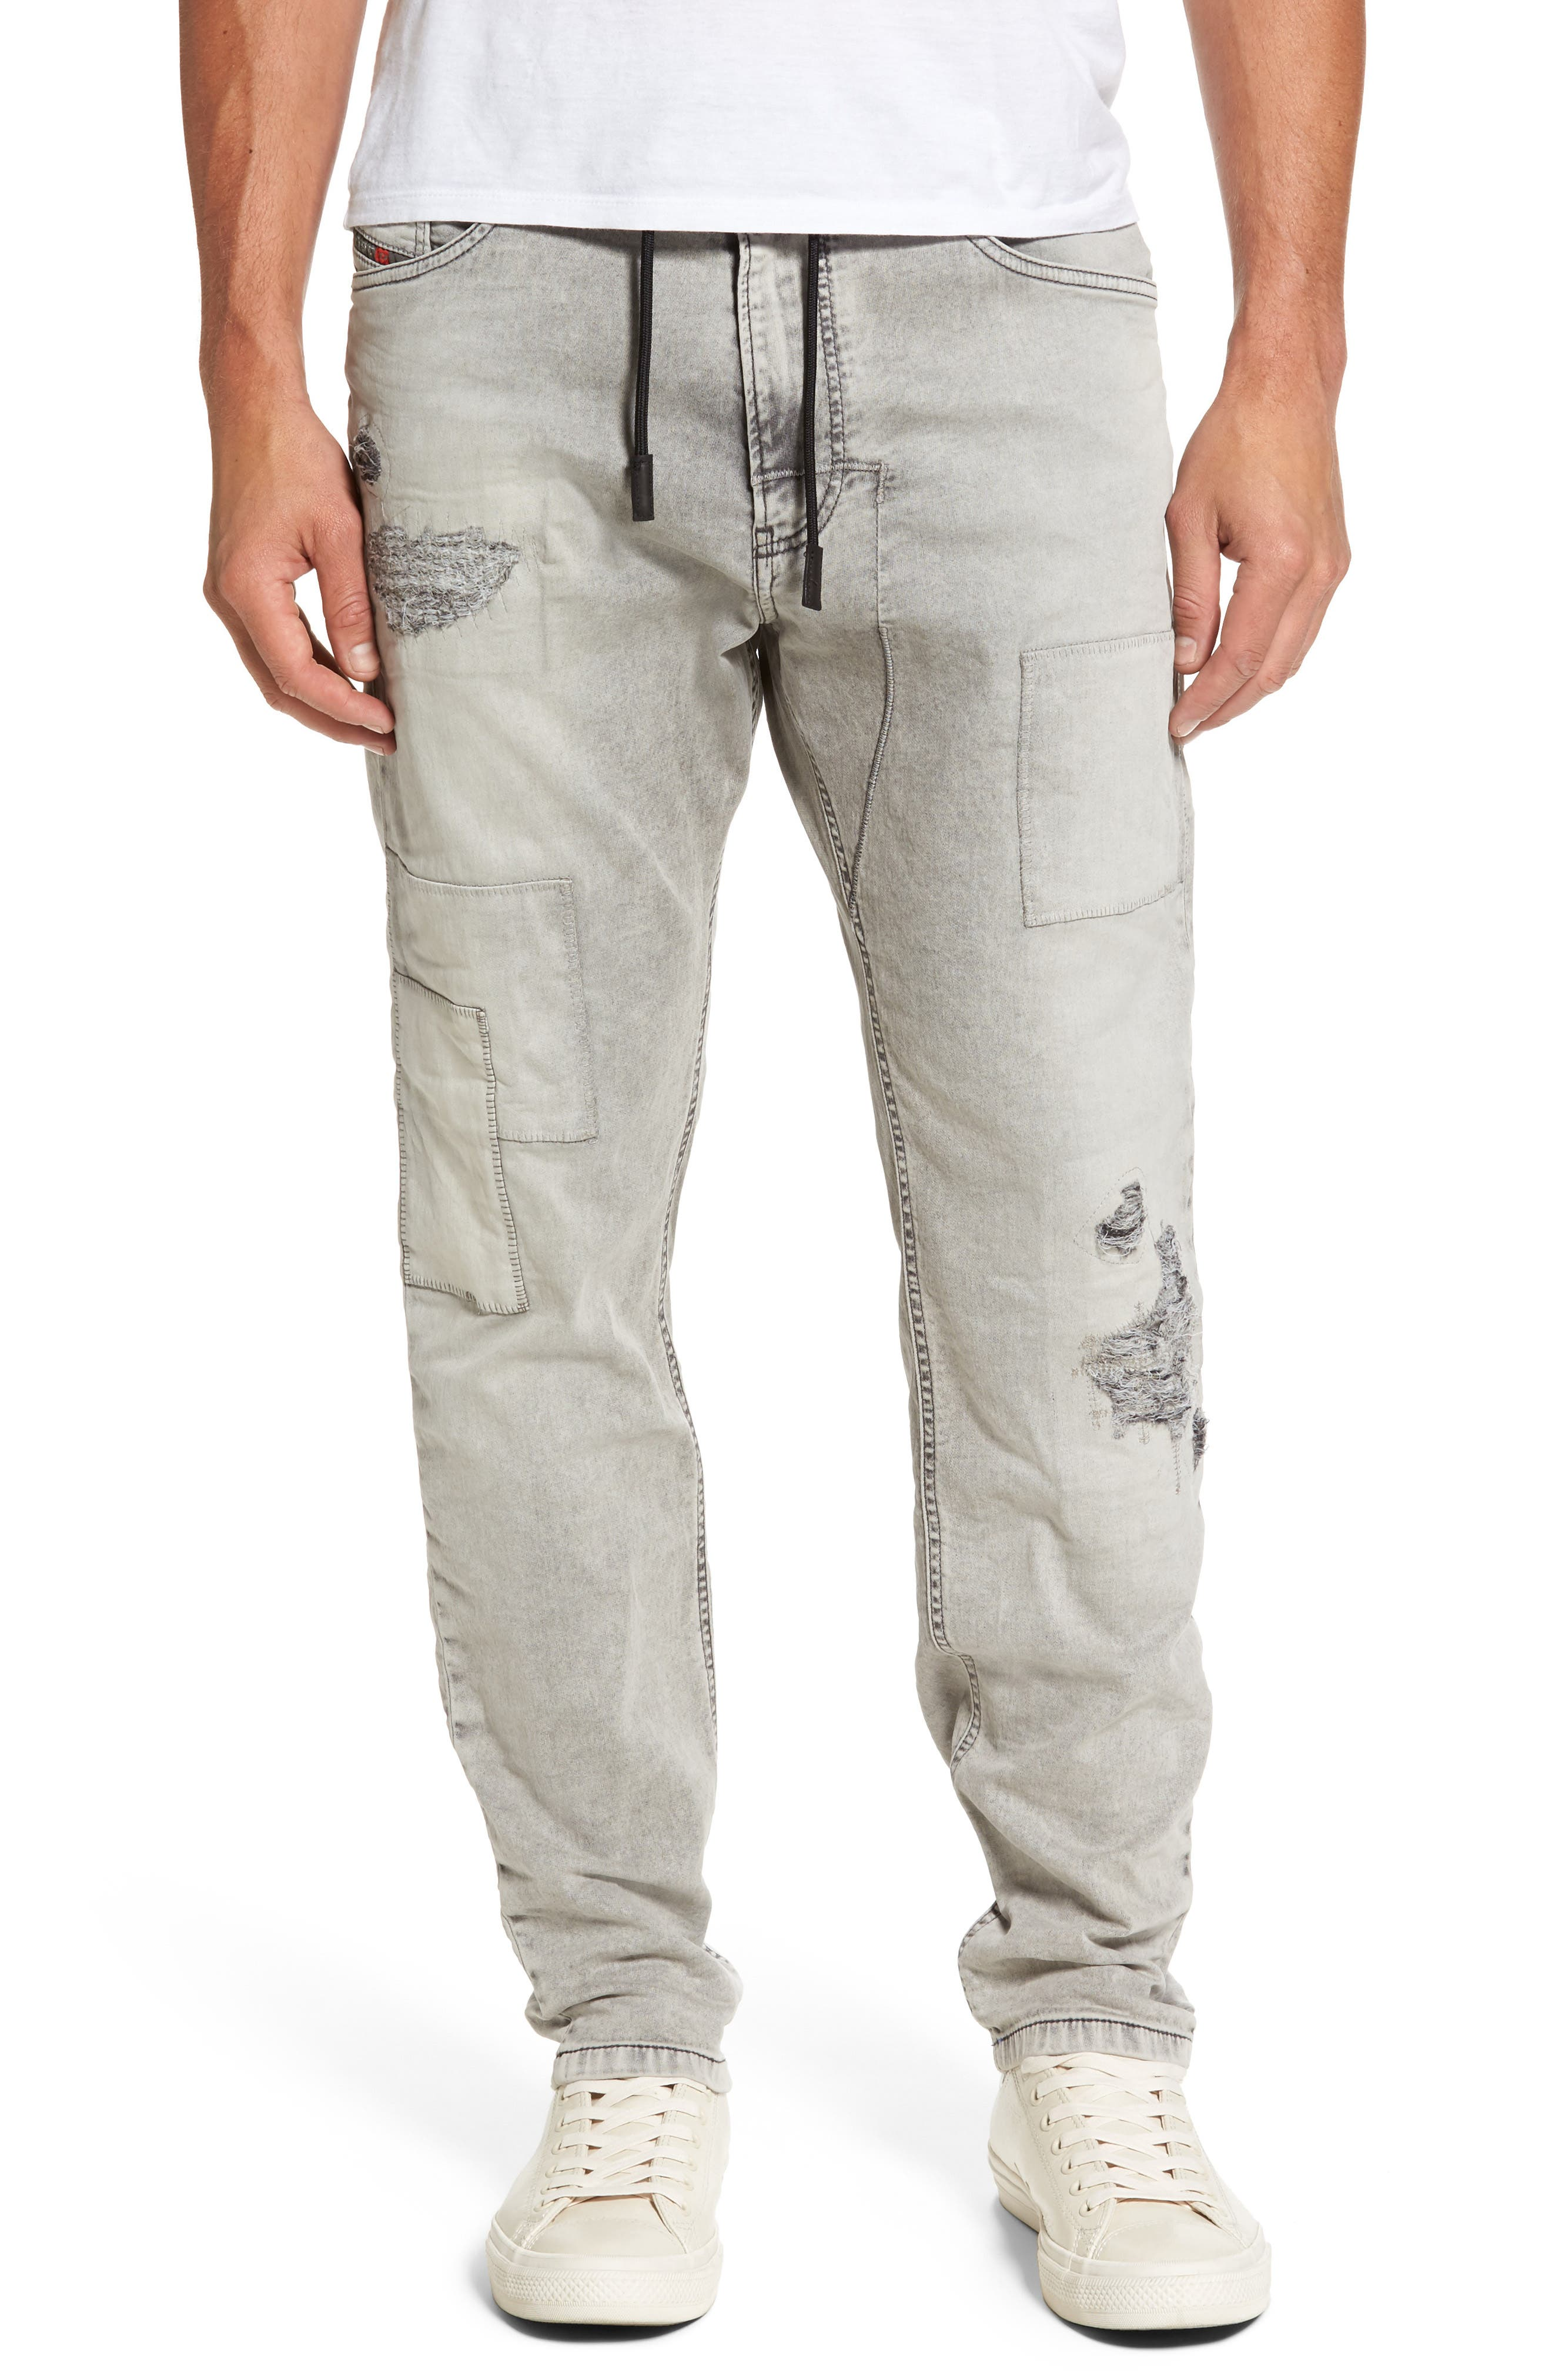 Narrot Slouchy Skinny Fit Jeans,                         Main,                         color, 0684M